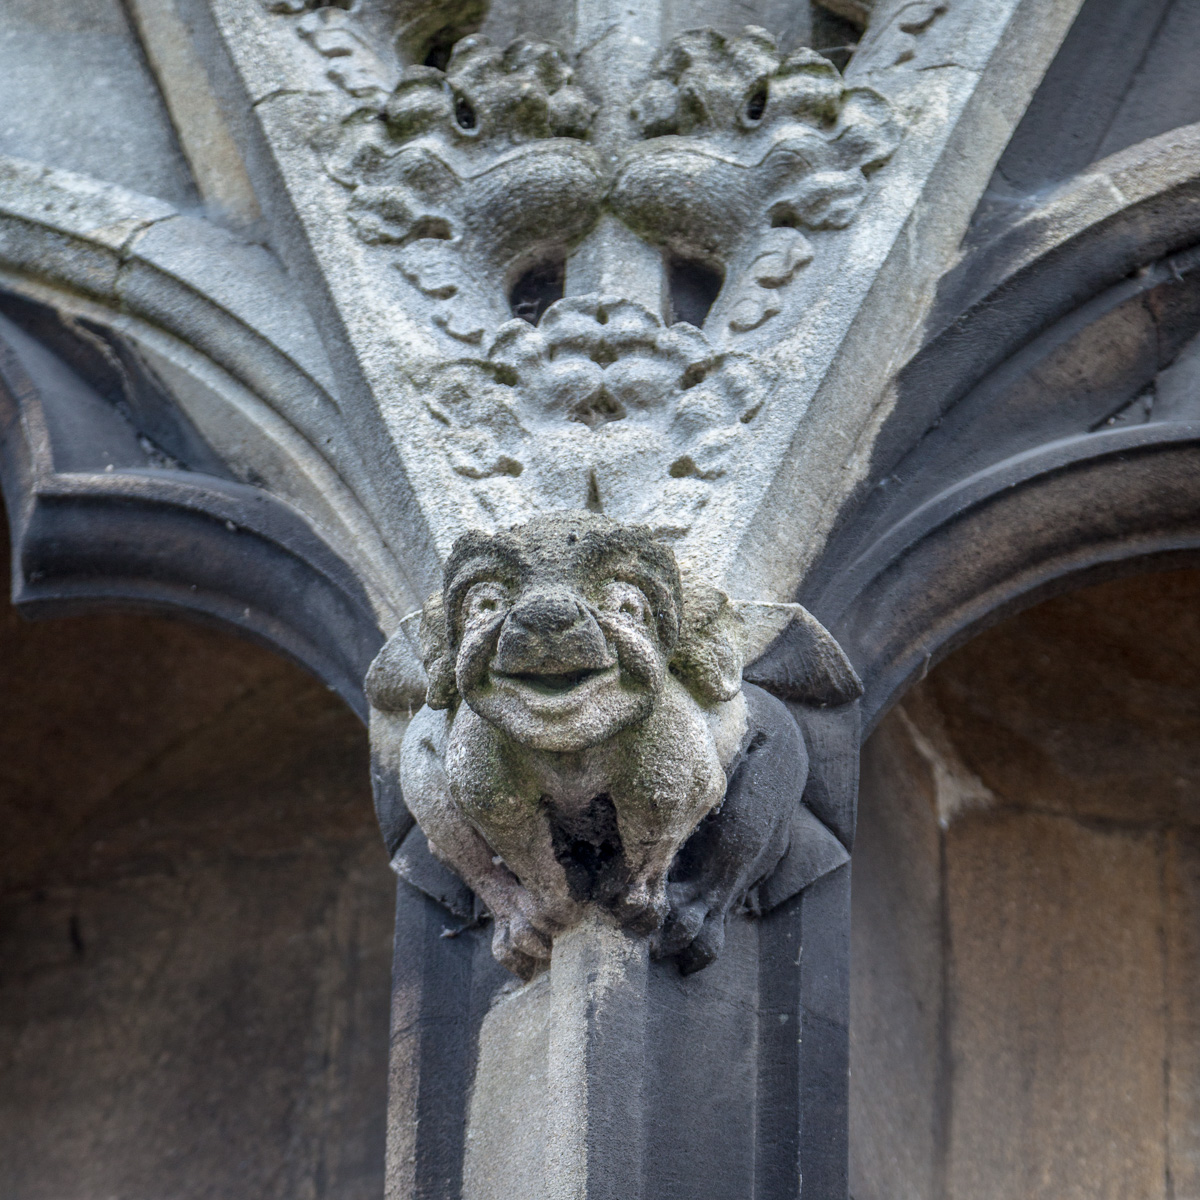 Grotesque on St. Mary Redcliffe, Bristol, England. - WCF-7187.jpg